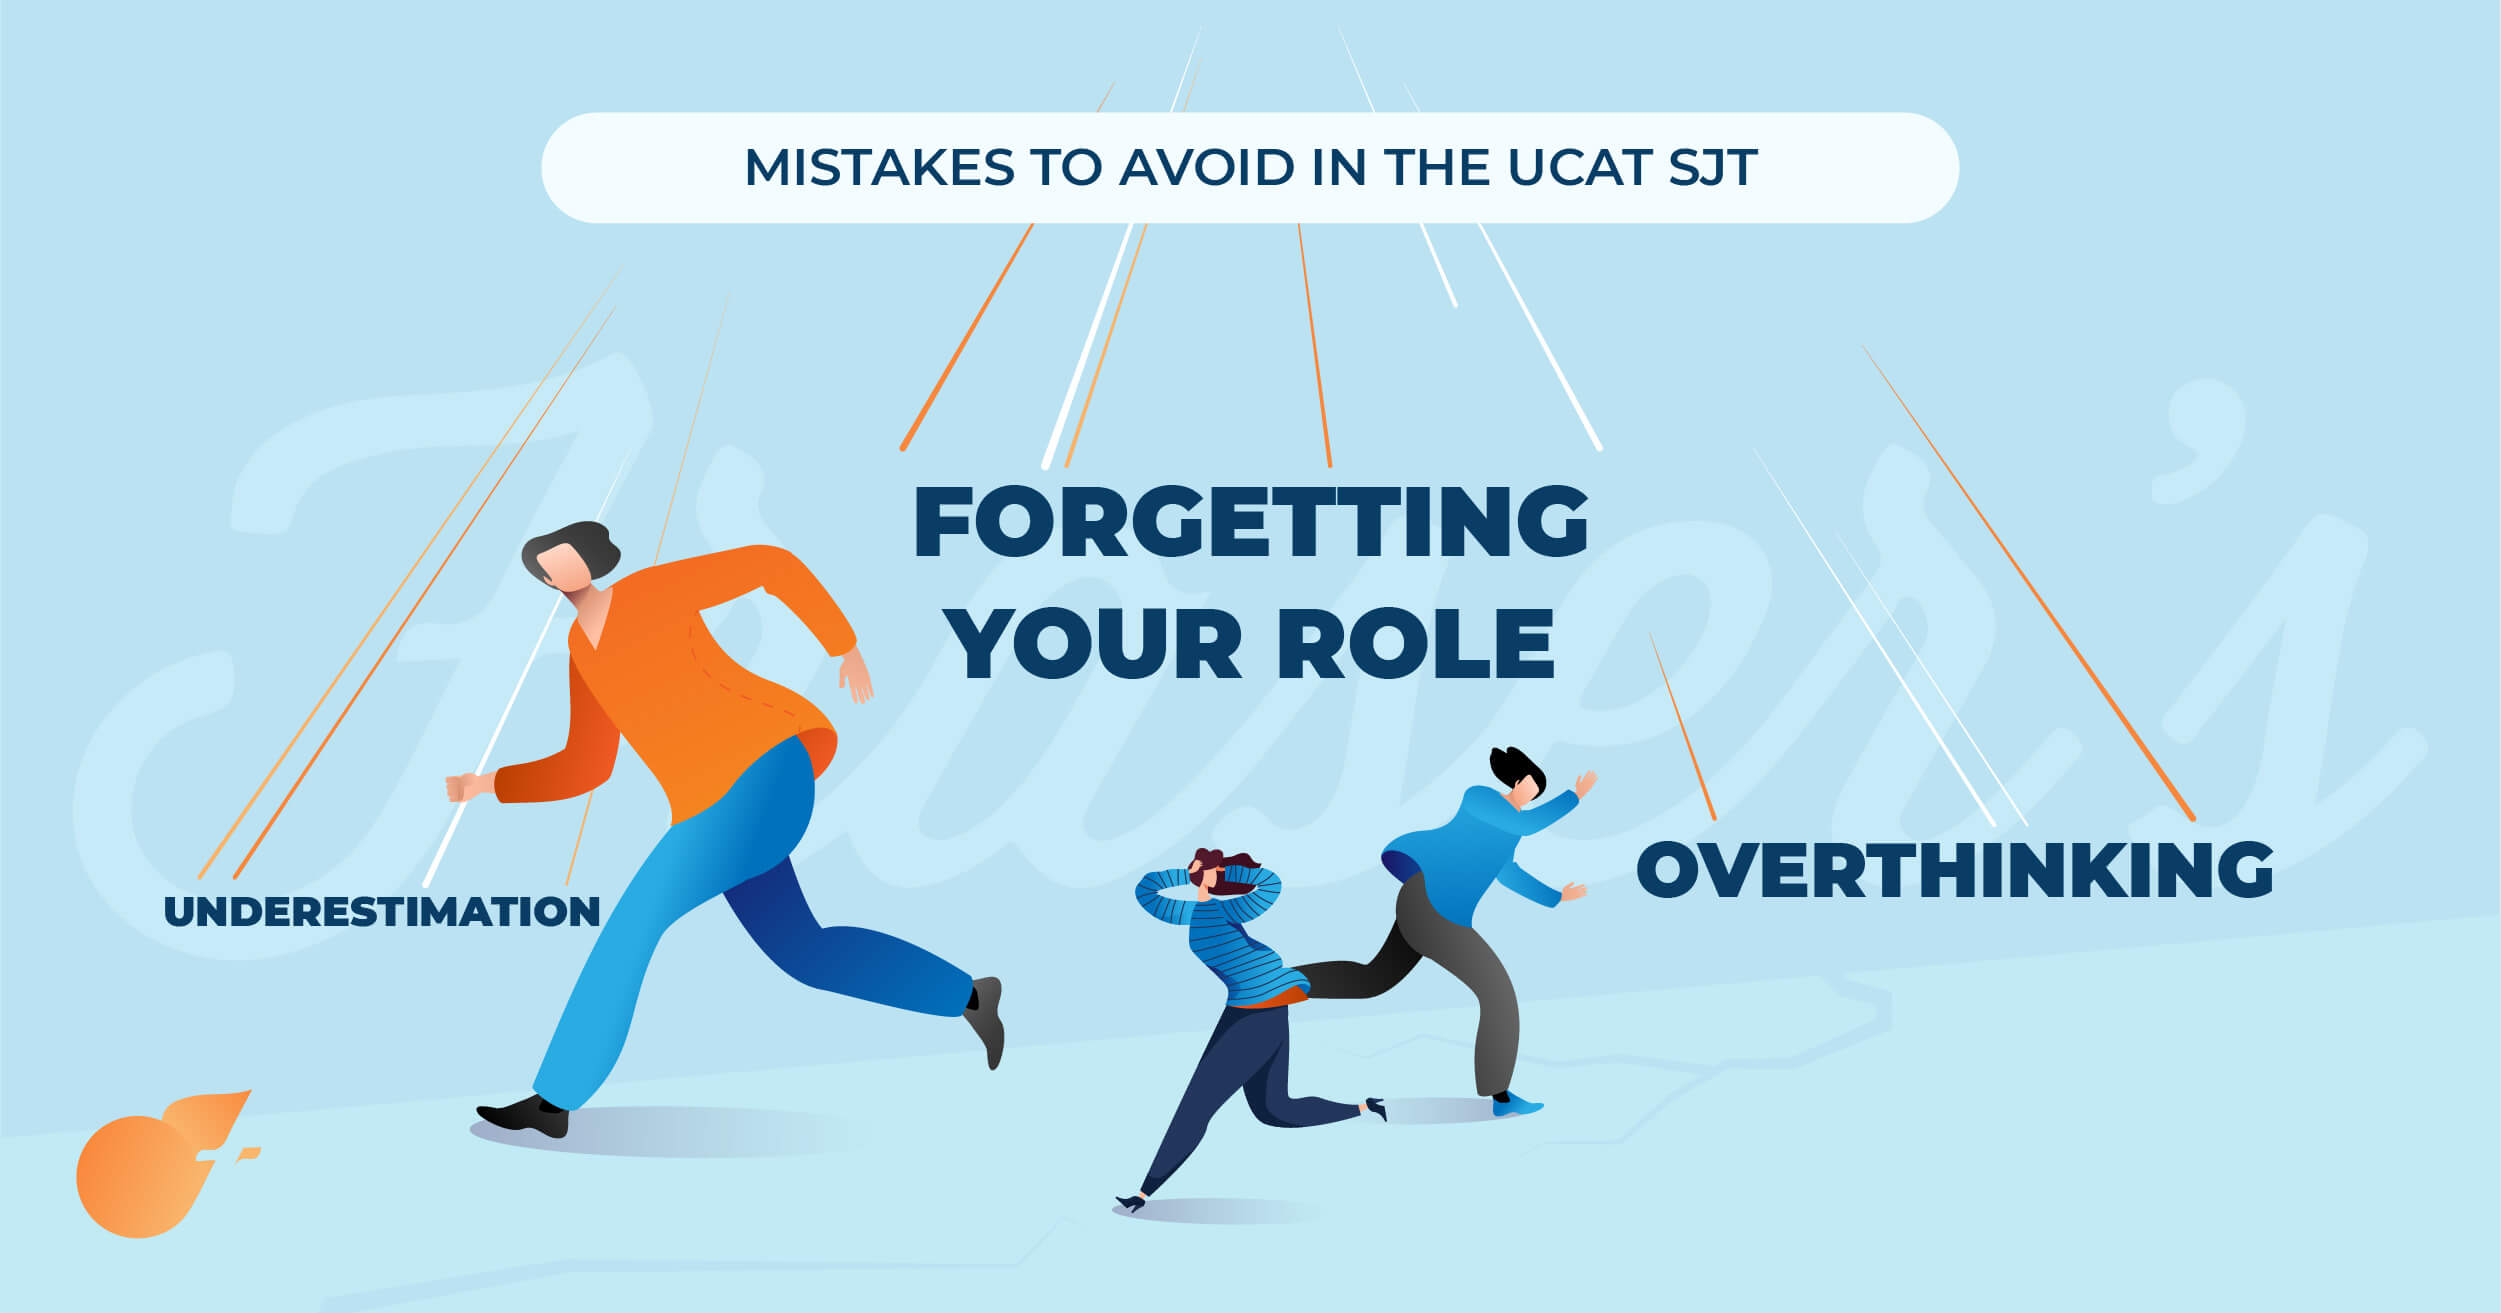 how to avoid mistakes in ucat situational judgement